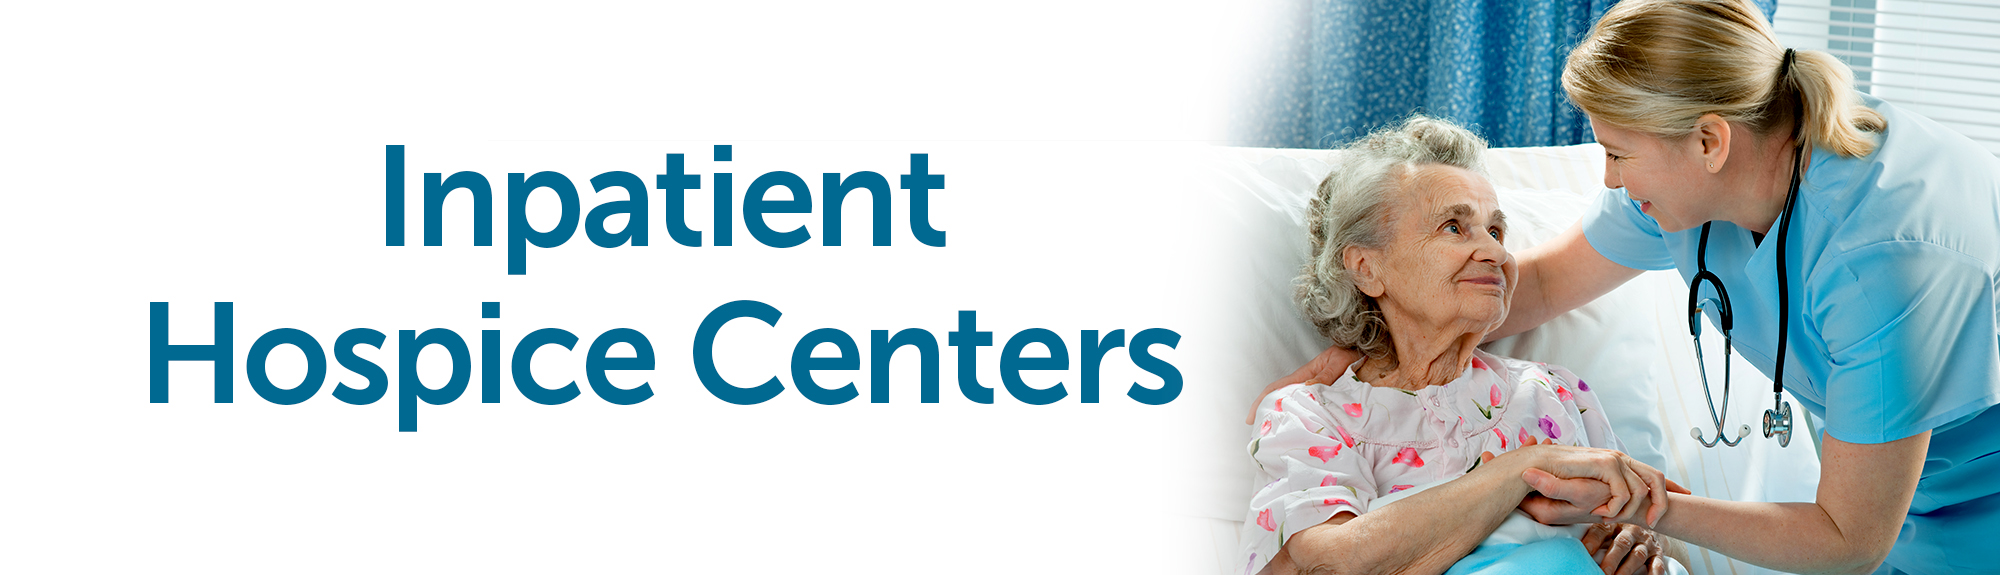 Inpatient Hospice Centers Banner